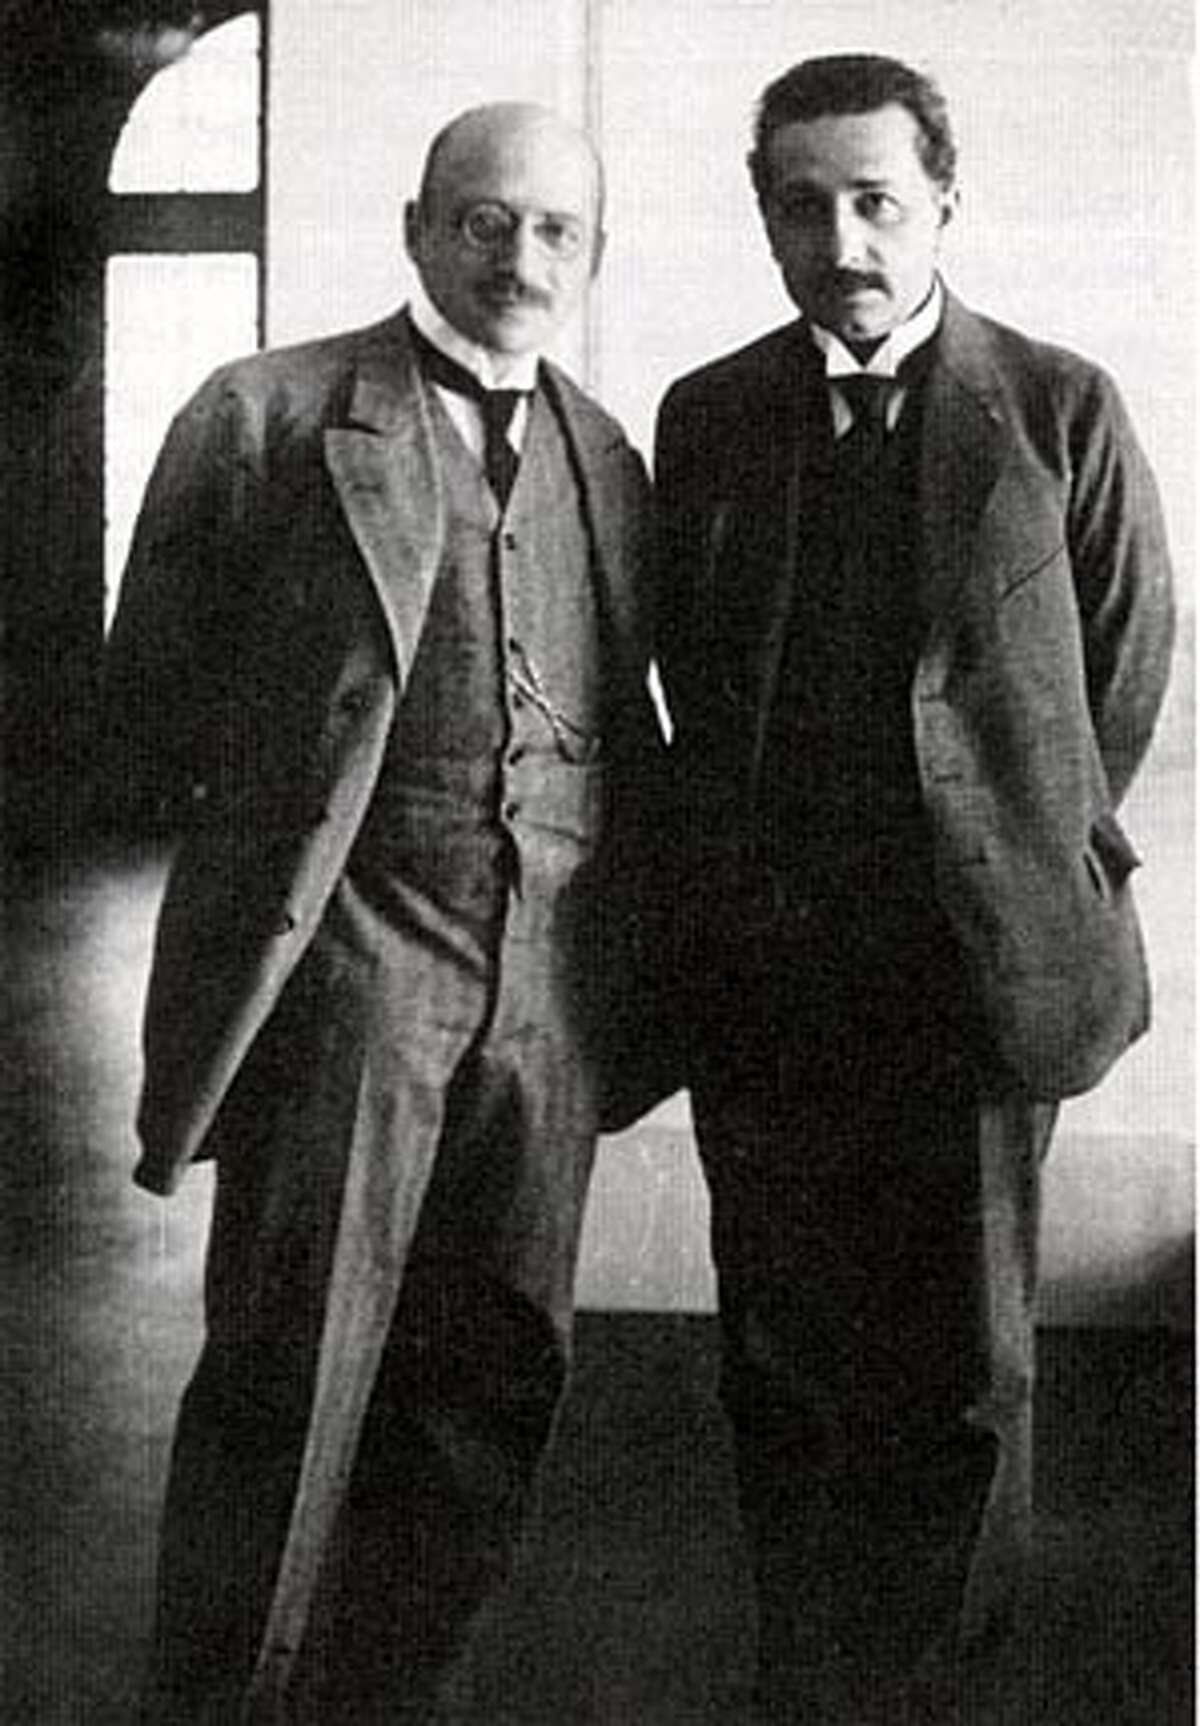 Fritz Haber and Albert Einstein a month before the start of World War II. BookReview#BookReview#Chronicle#08-07-2005#ALL#2star#e6#0423148590